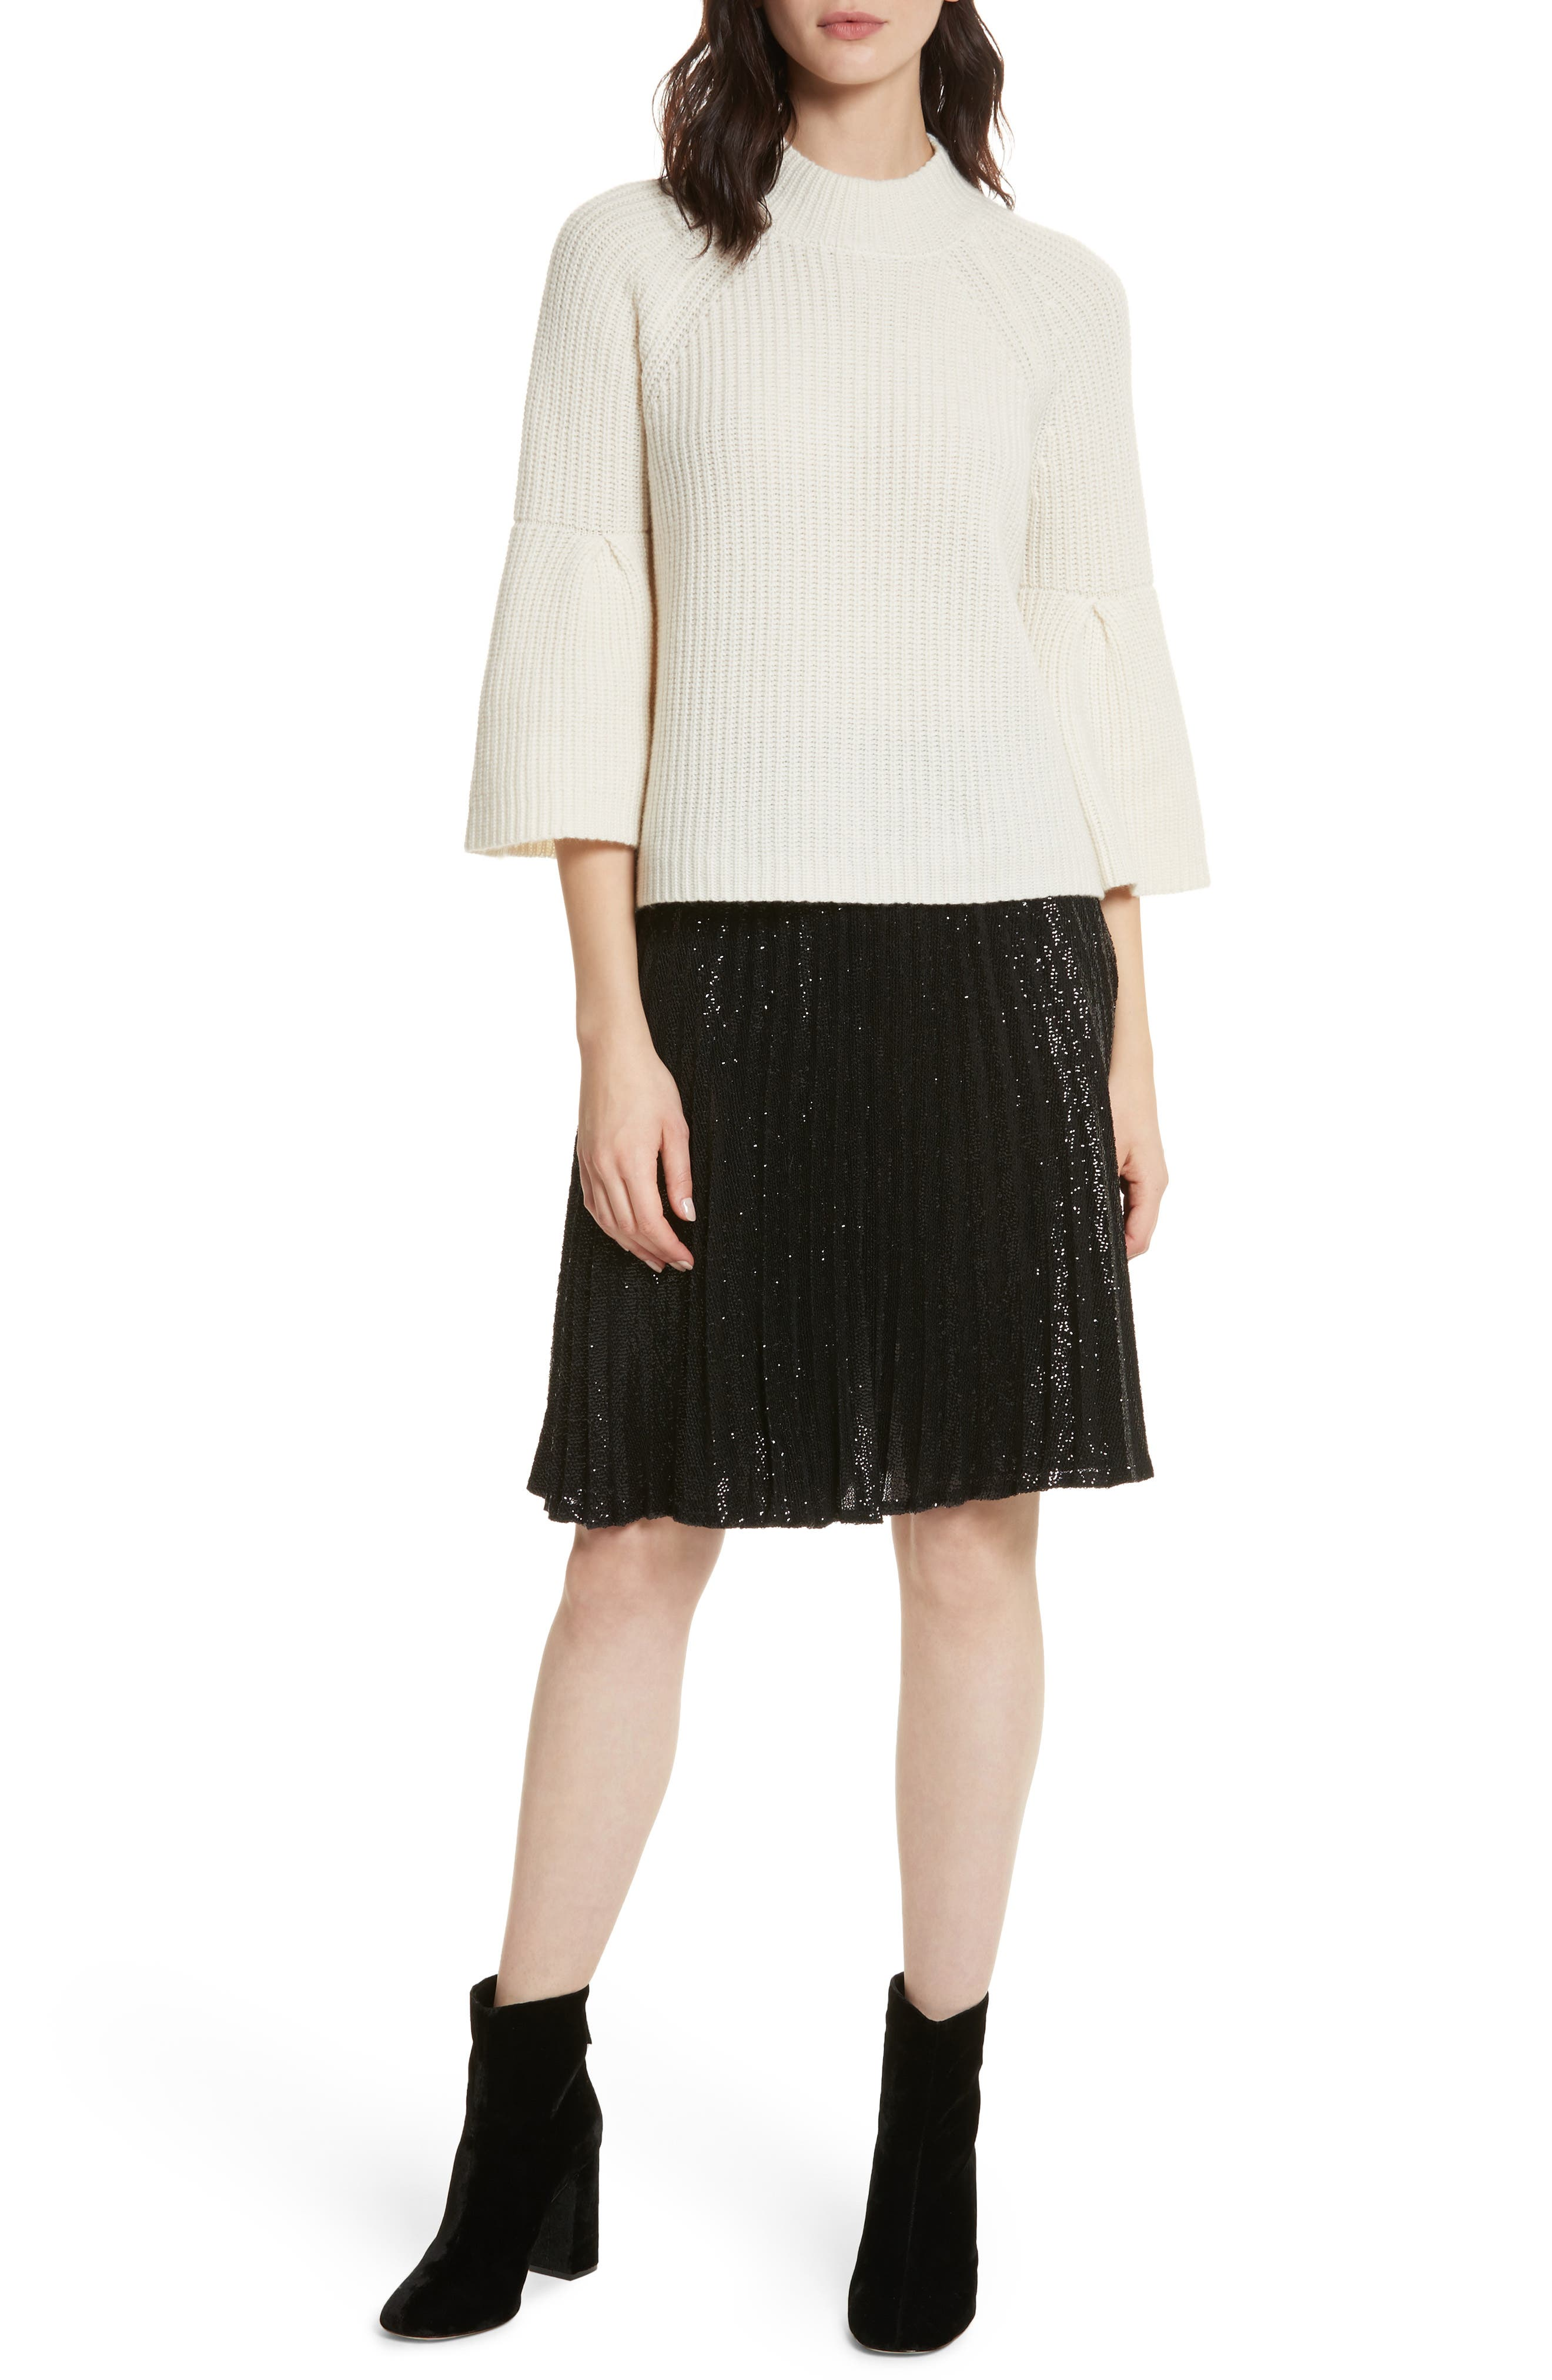 Ingrit Wool & Cashmere Sweater,                             Alternate thumbnail 7, color,                             114